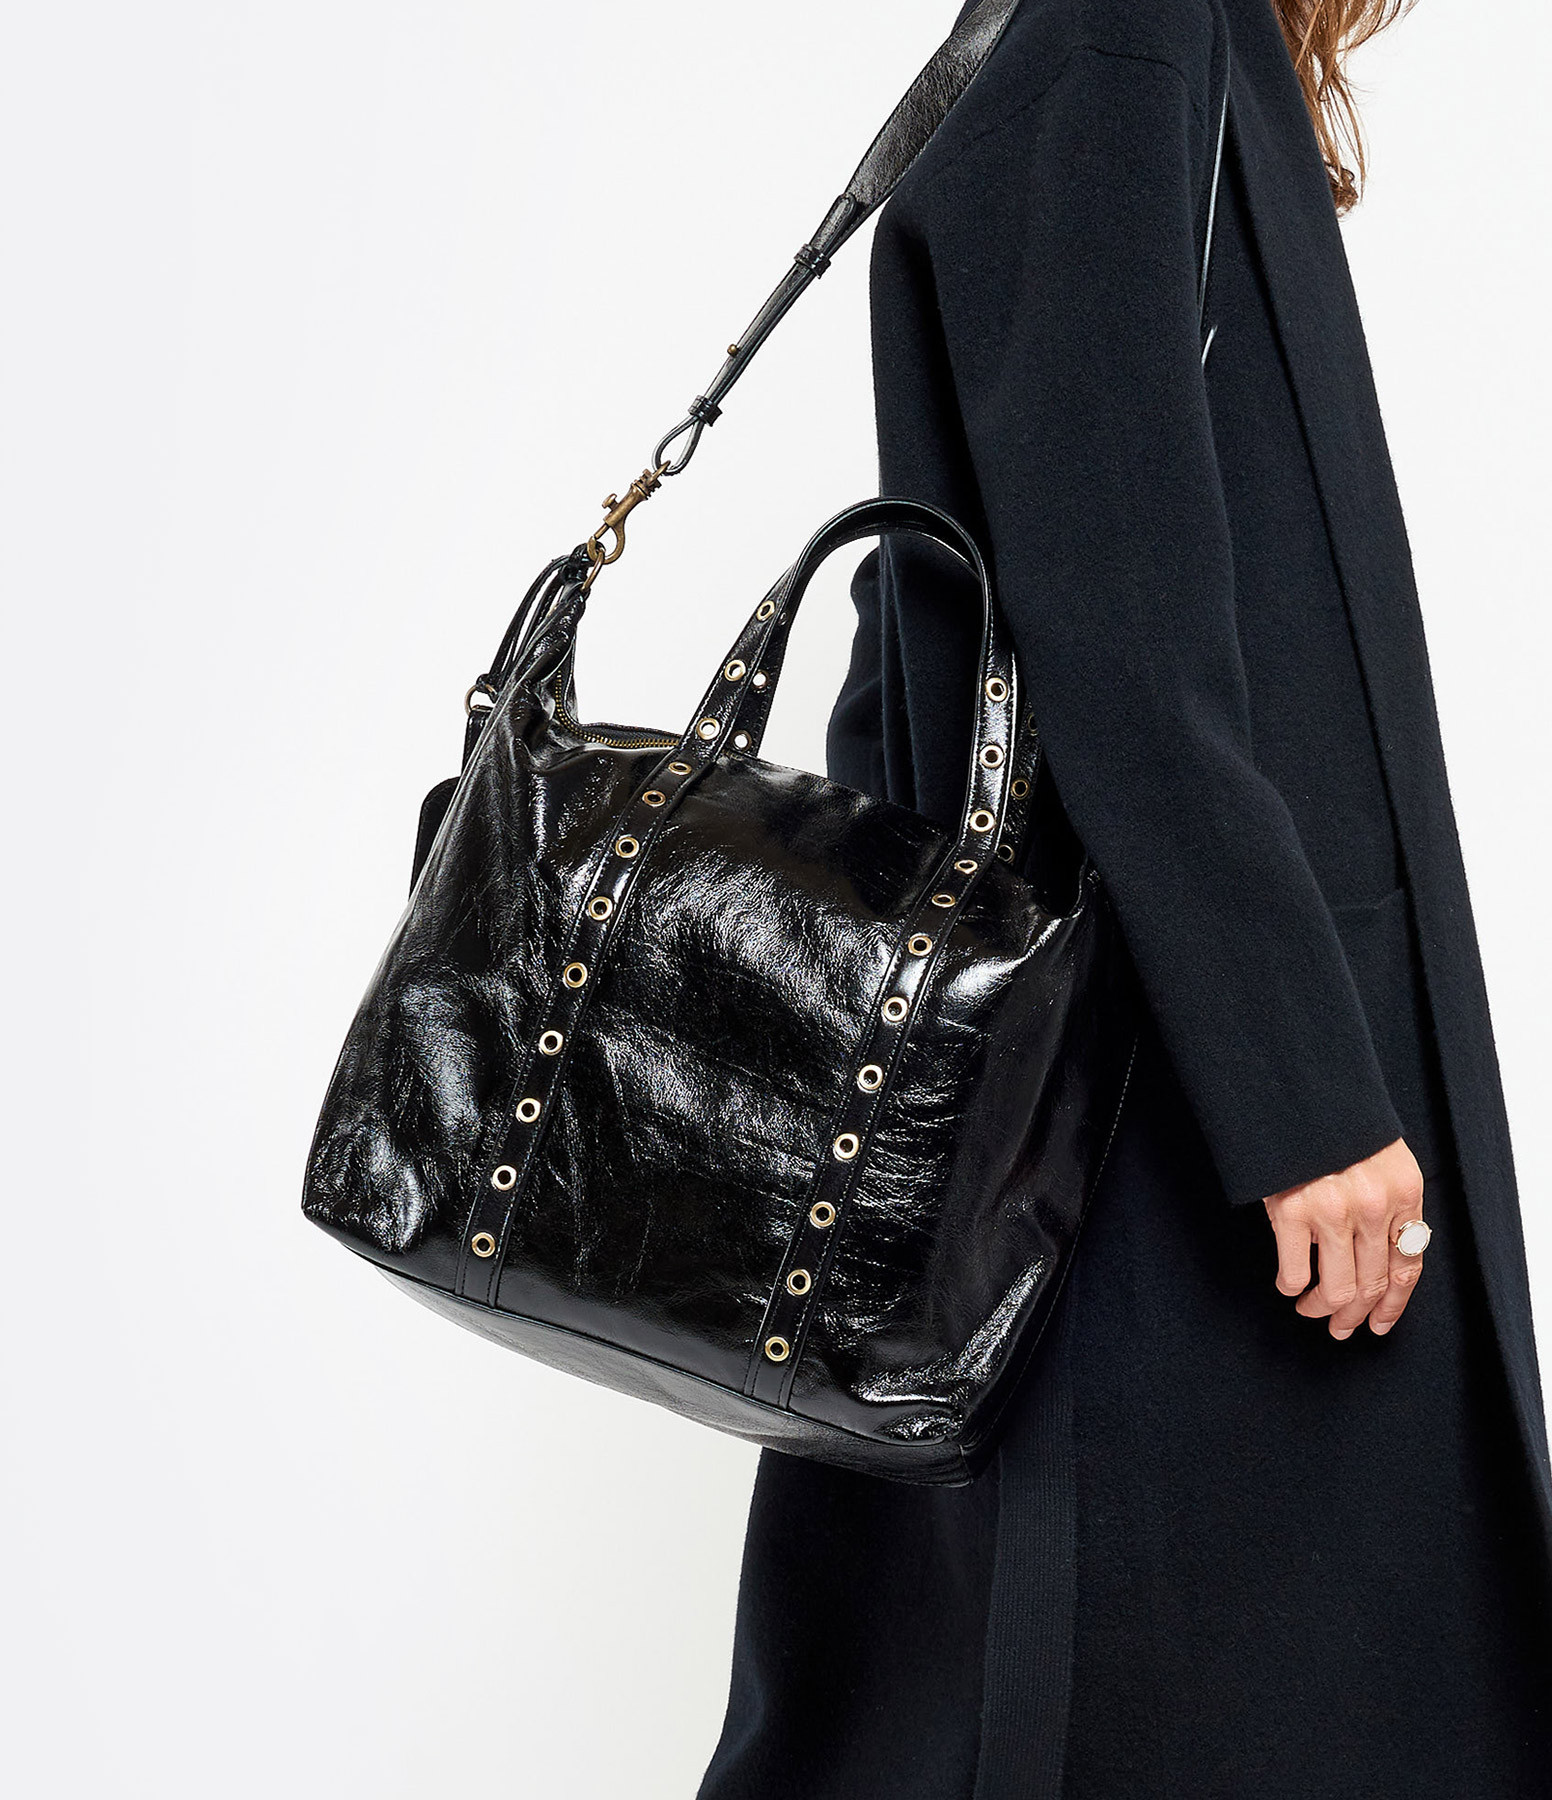 VANESSA BRUNO - Sac Zippy GM Cuir Noir